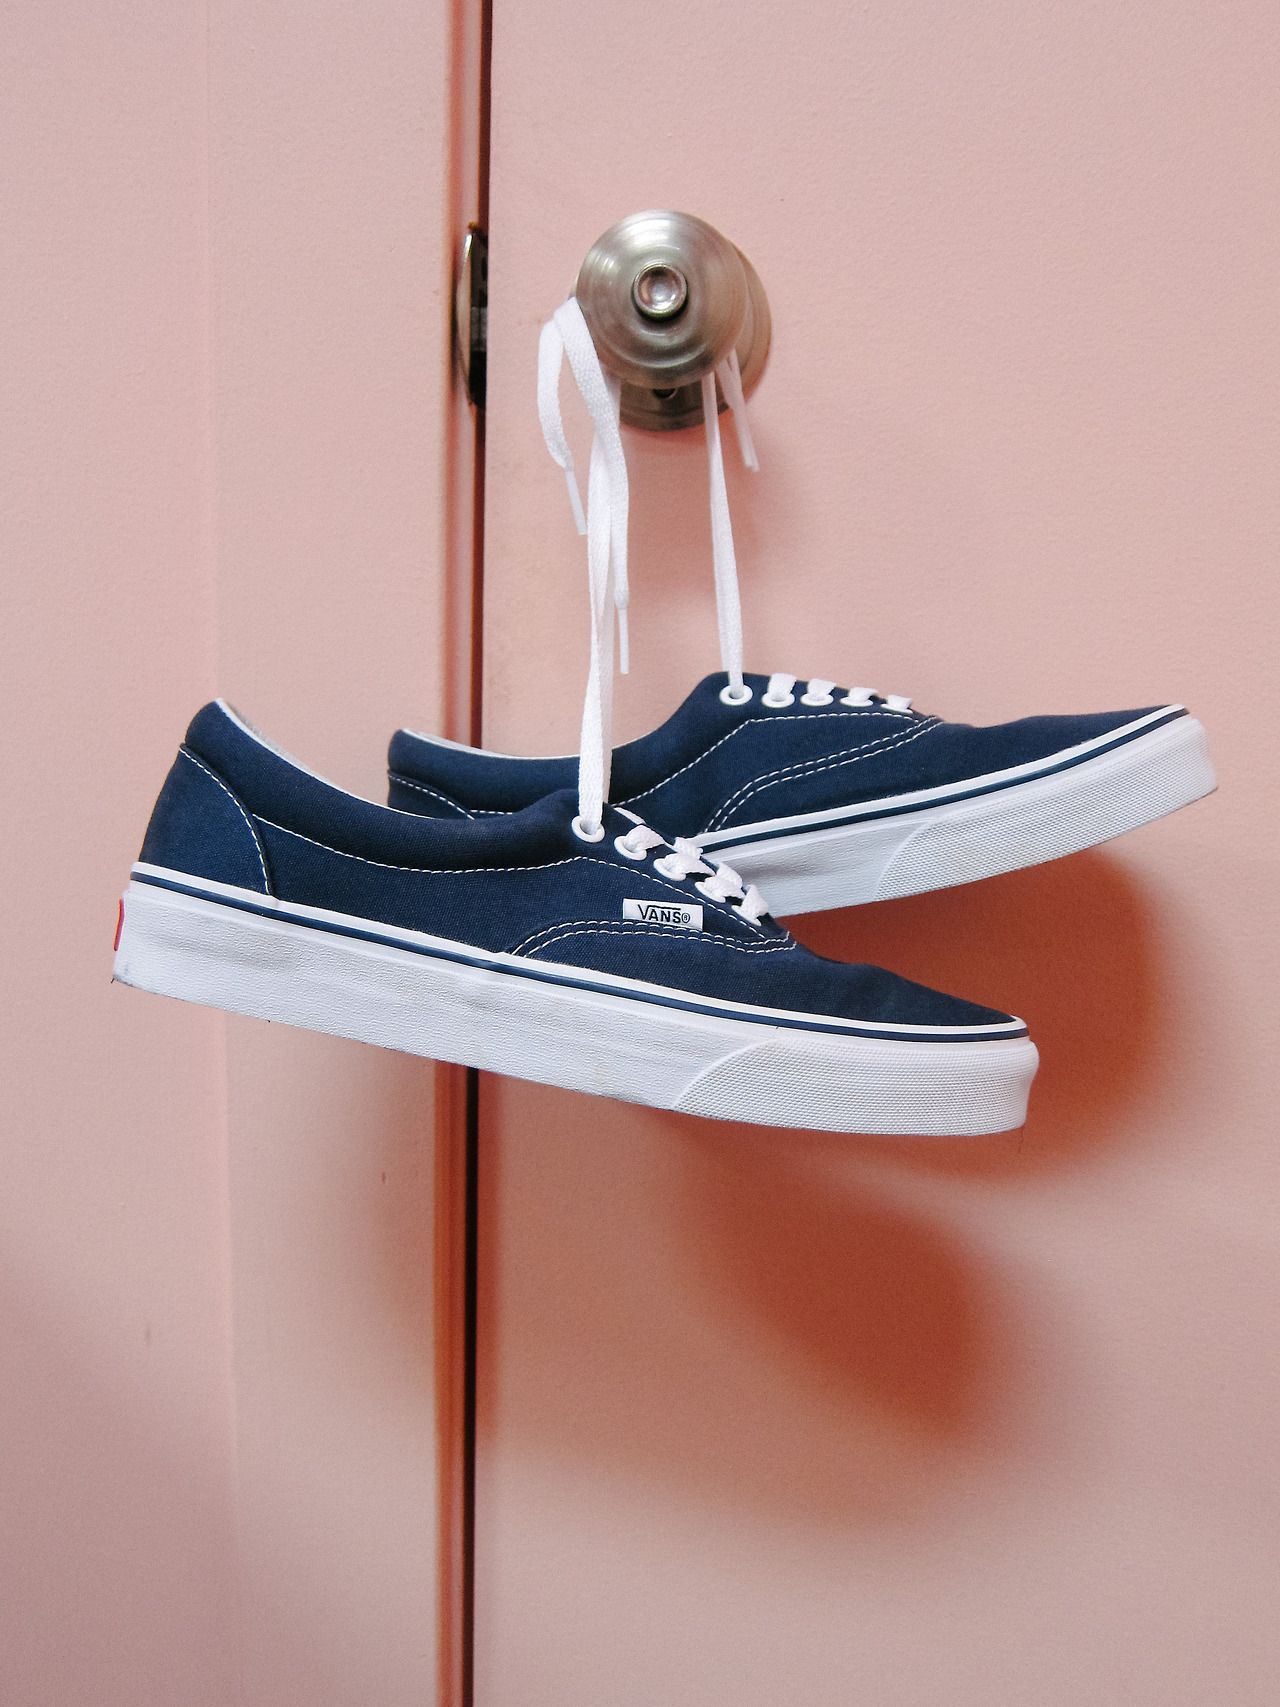 5631d2521c Hang on to summer with the Era. Shop Classics styles at vans.com ...